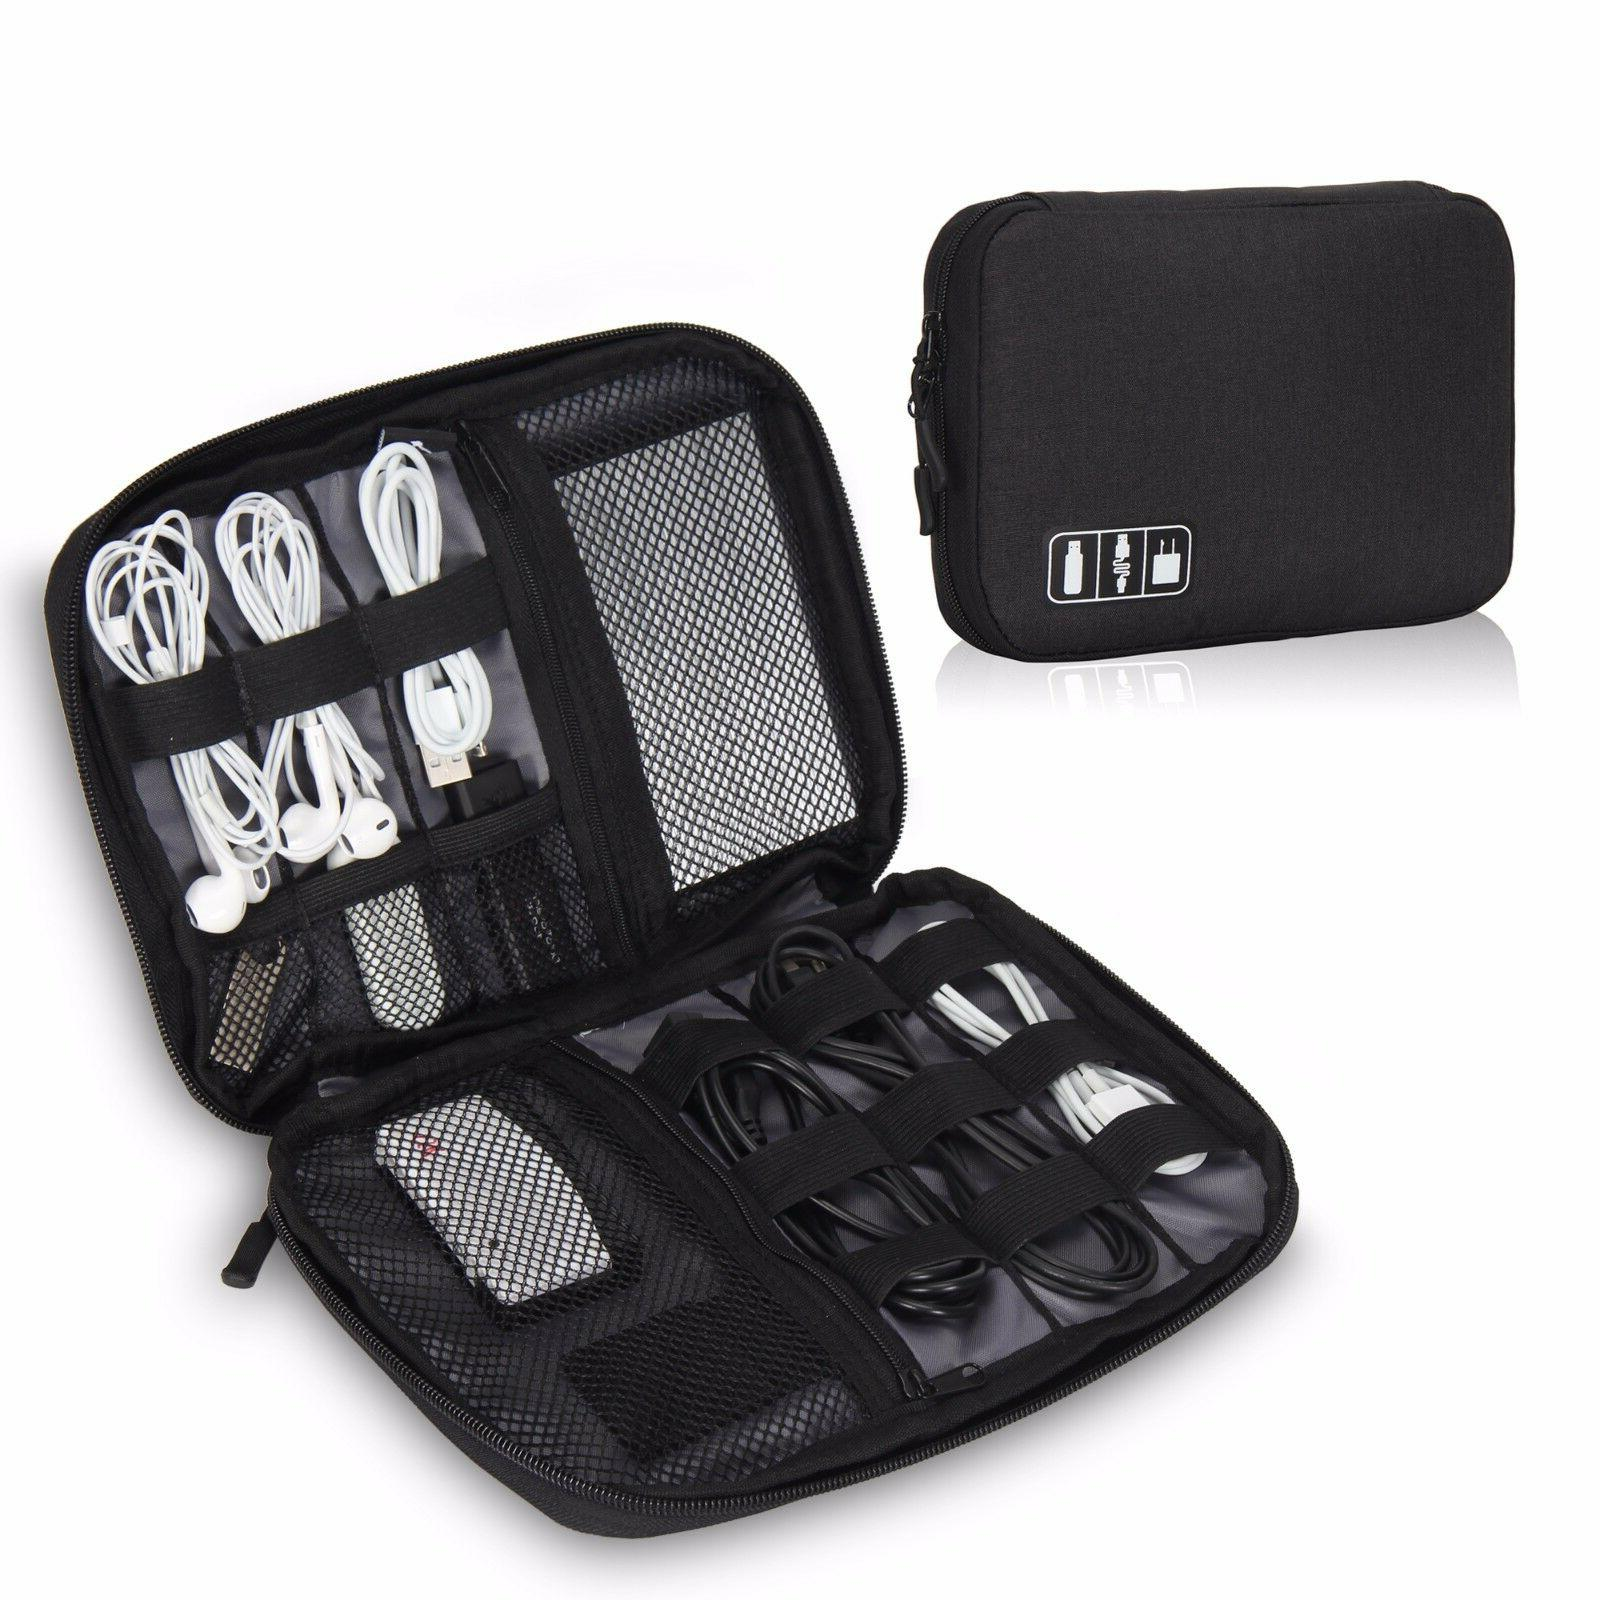 travel cable cord organizer electronics accessories bag